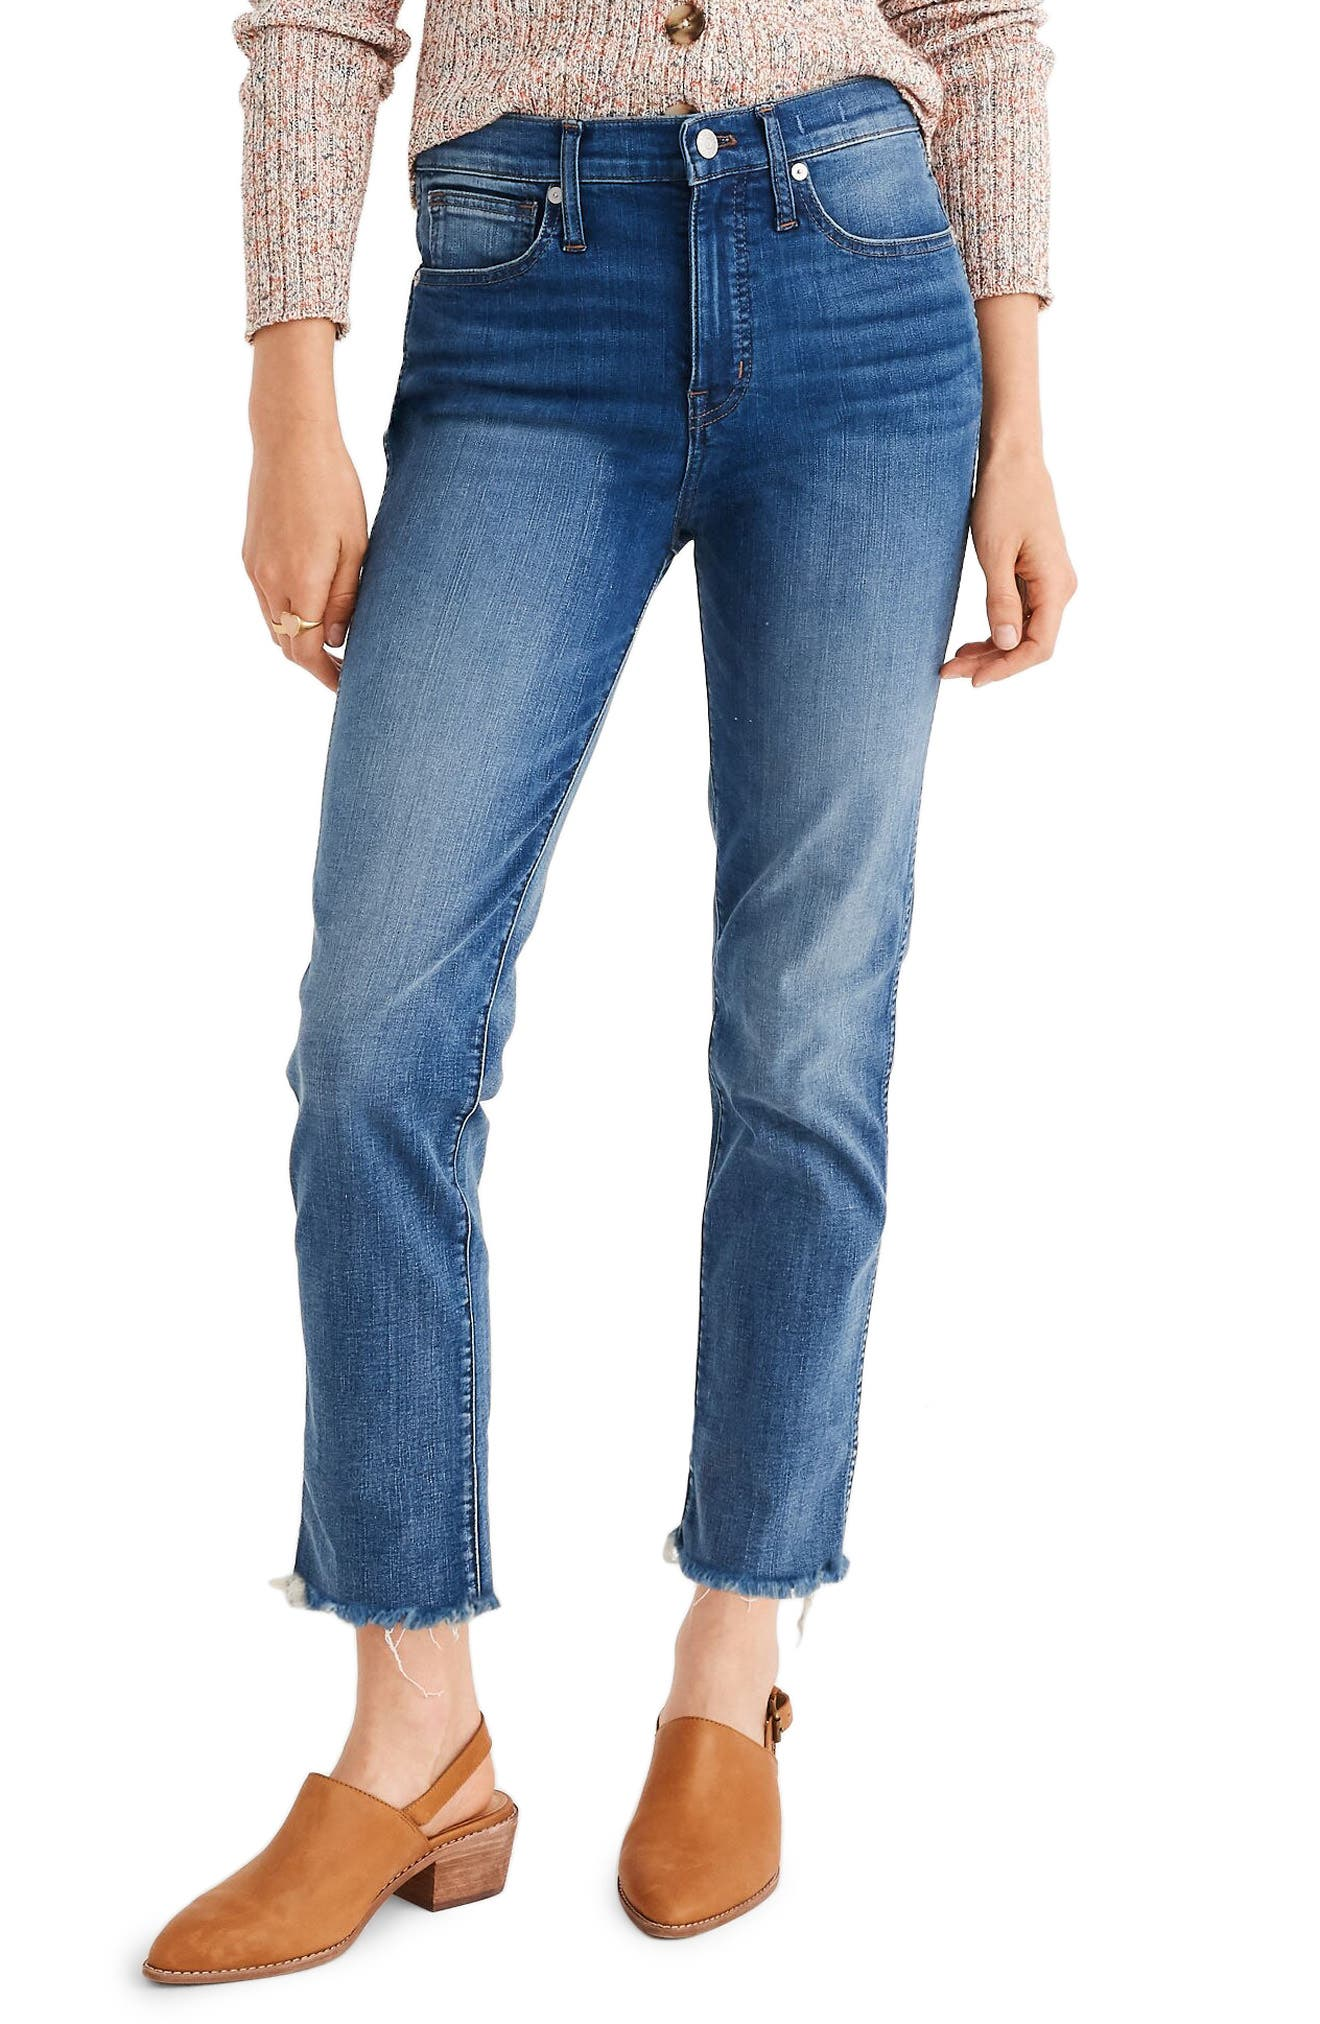 Madewell Stovepipe Jeans Fluffy Hem Edition (Chancery Wash) (Regular & Plus Size)